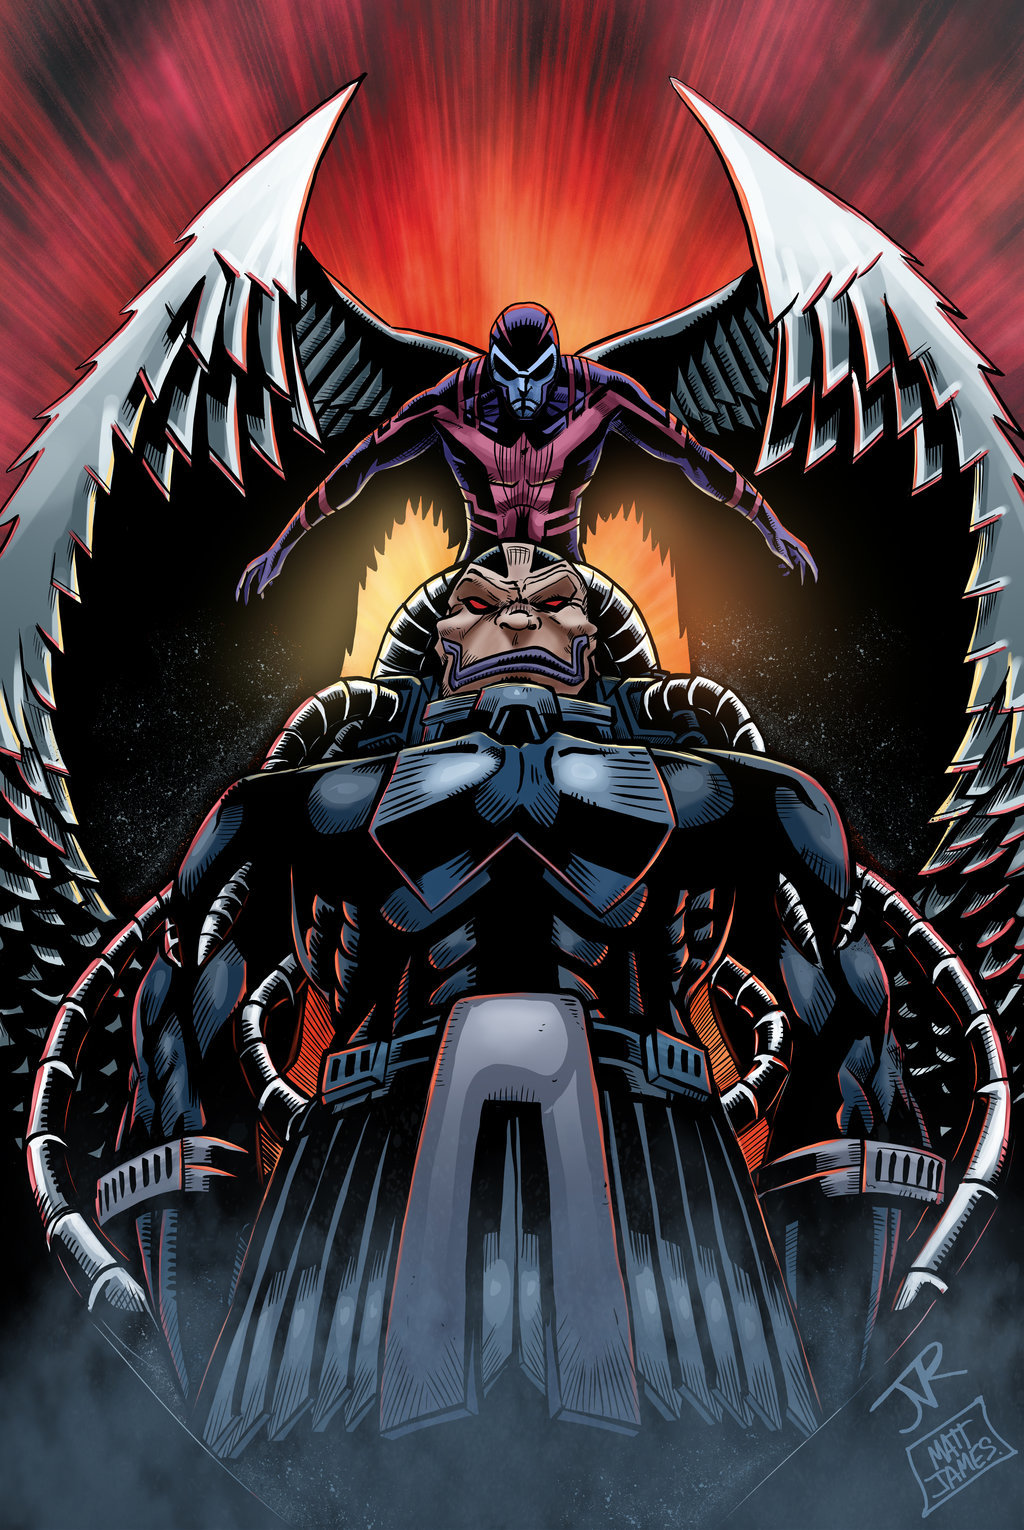 Archangel and Apocalypse